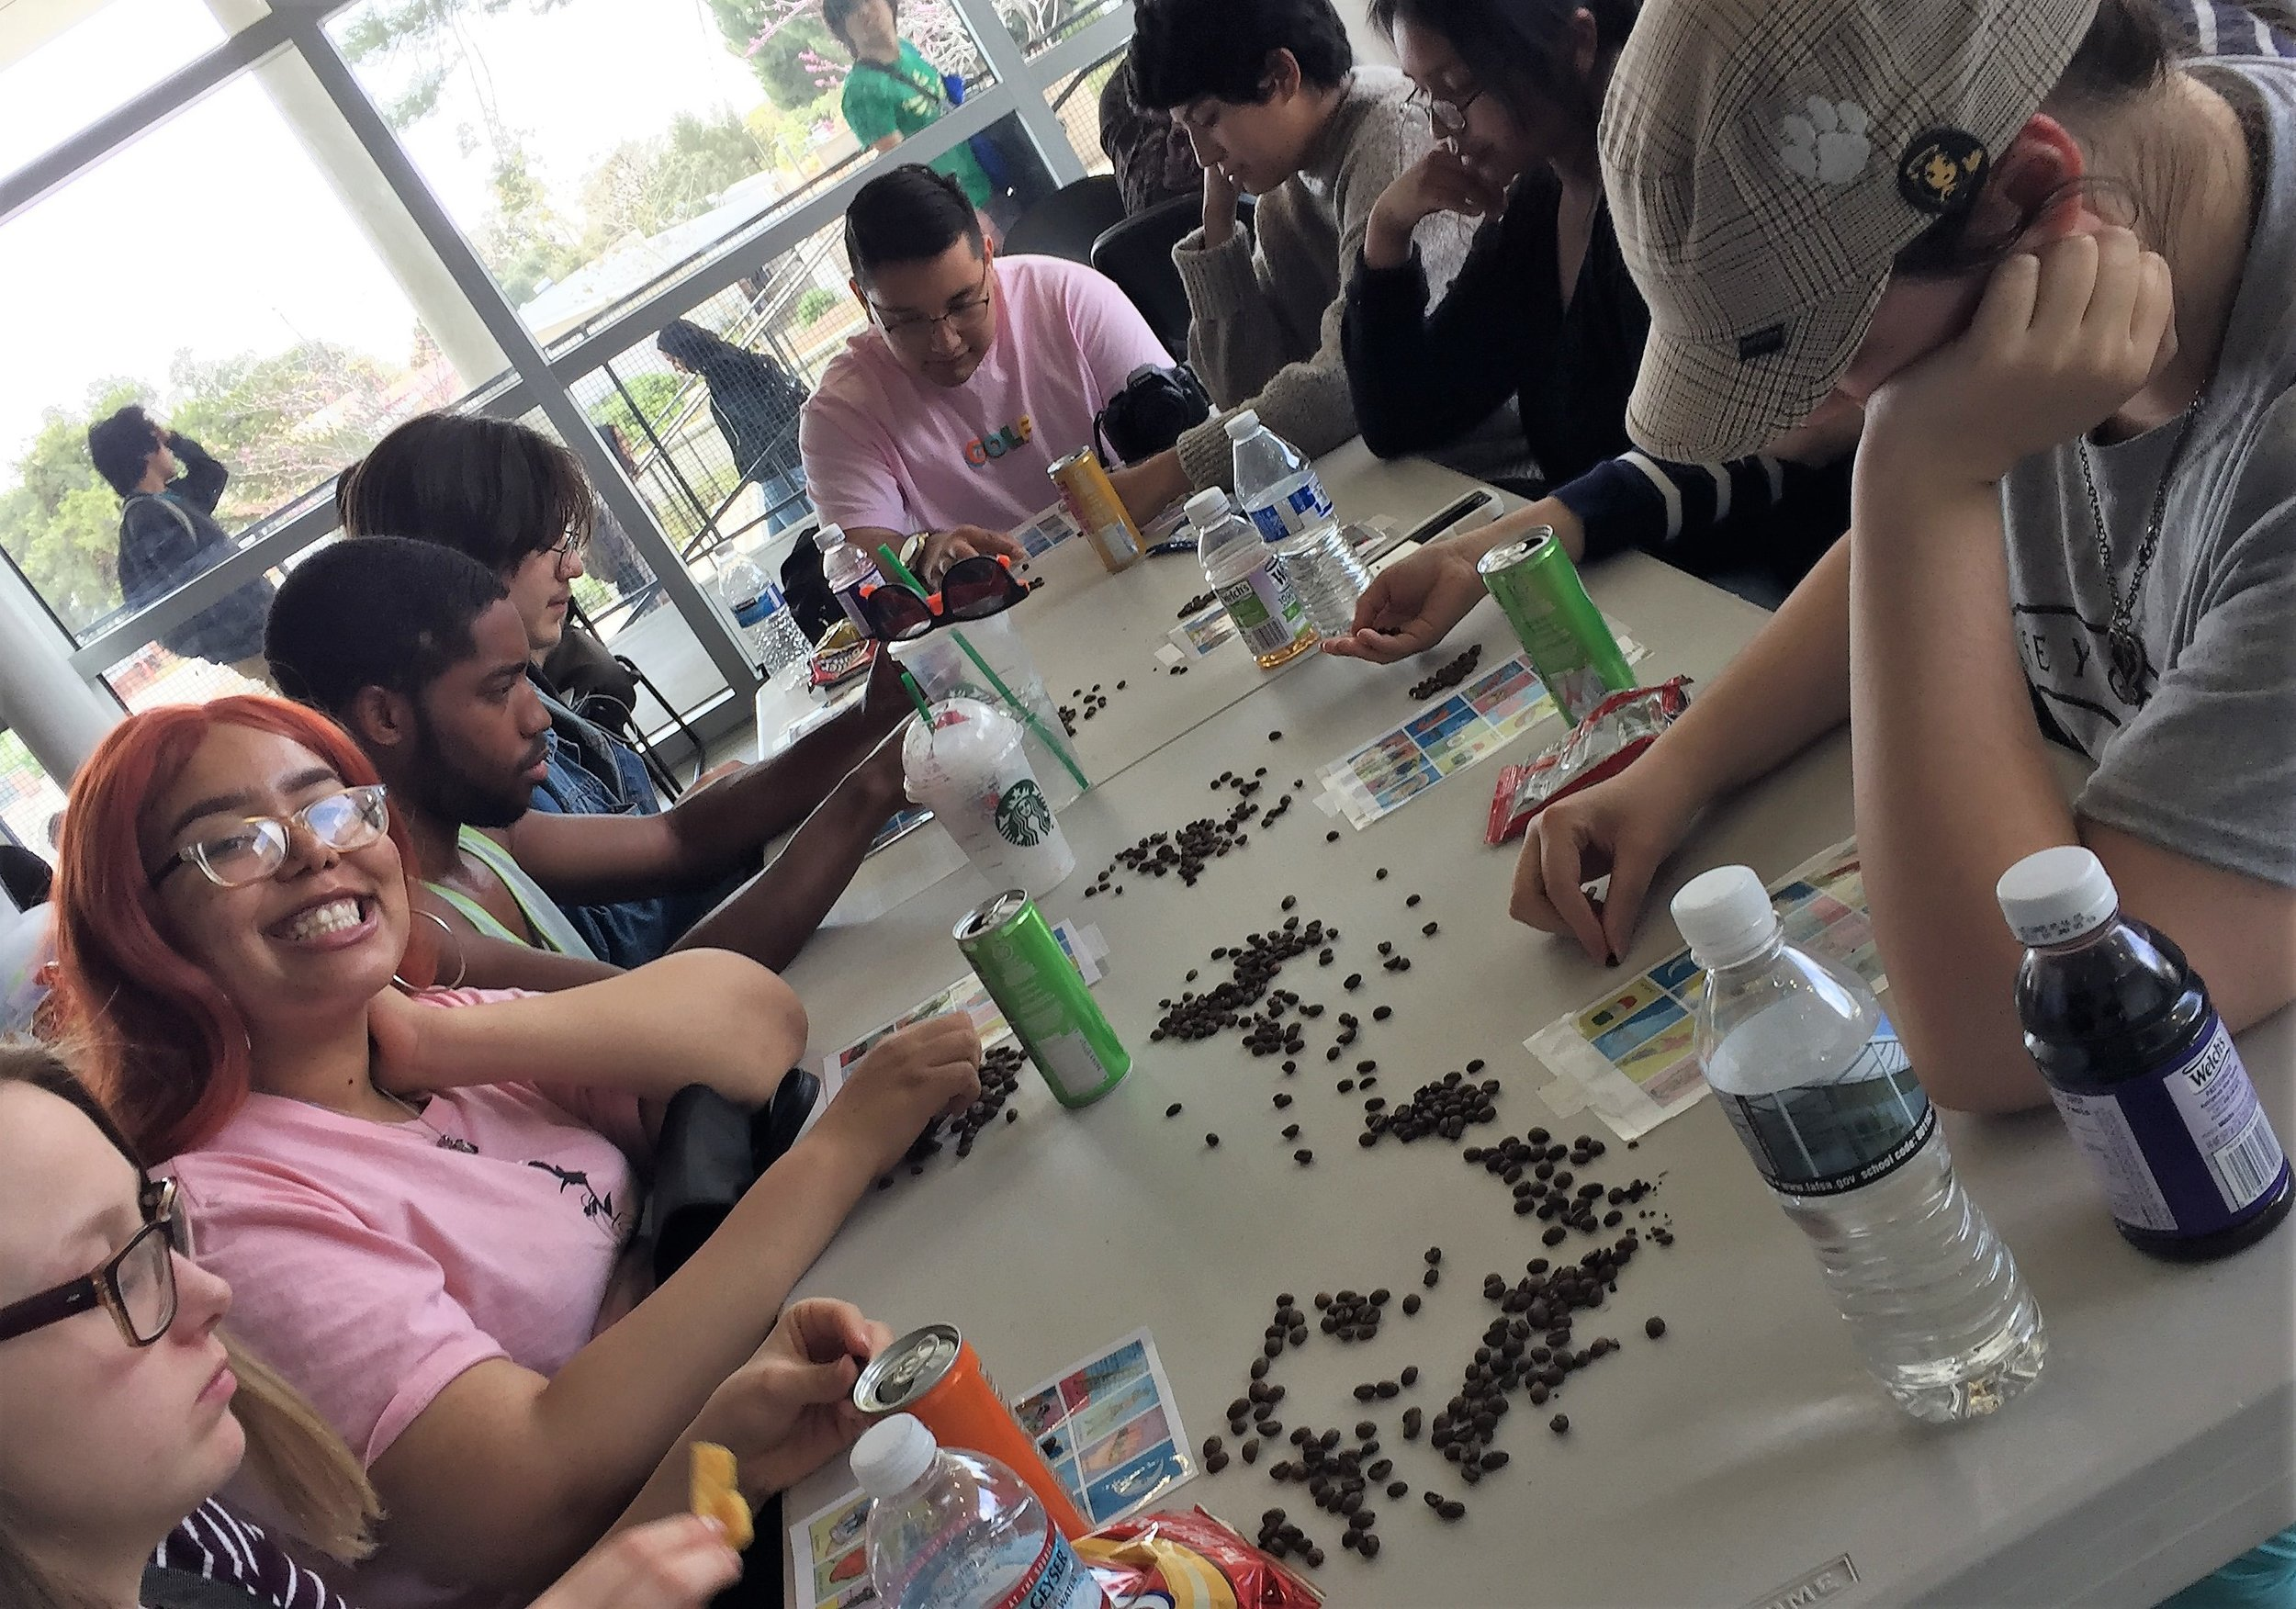 Students participating in the Millenial Loteria game.